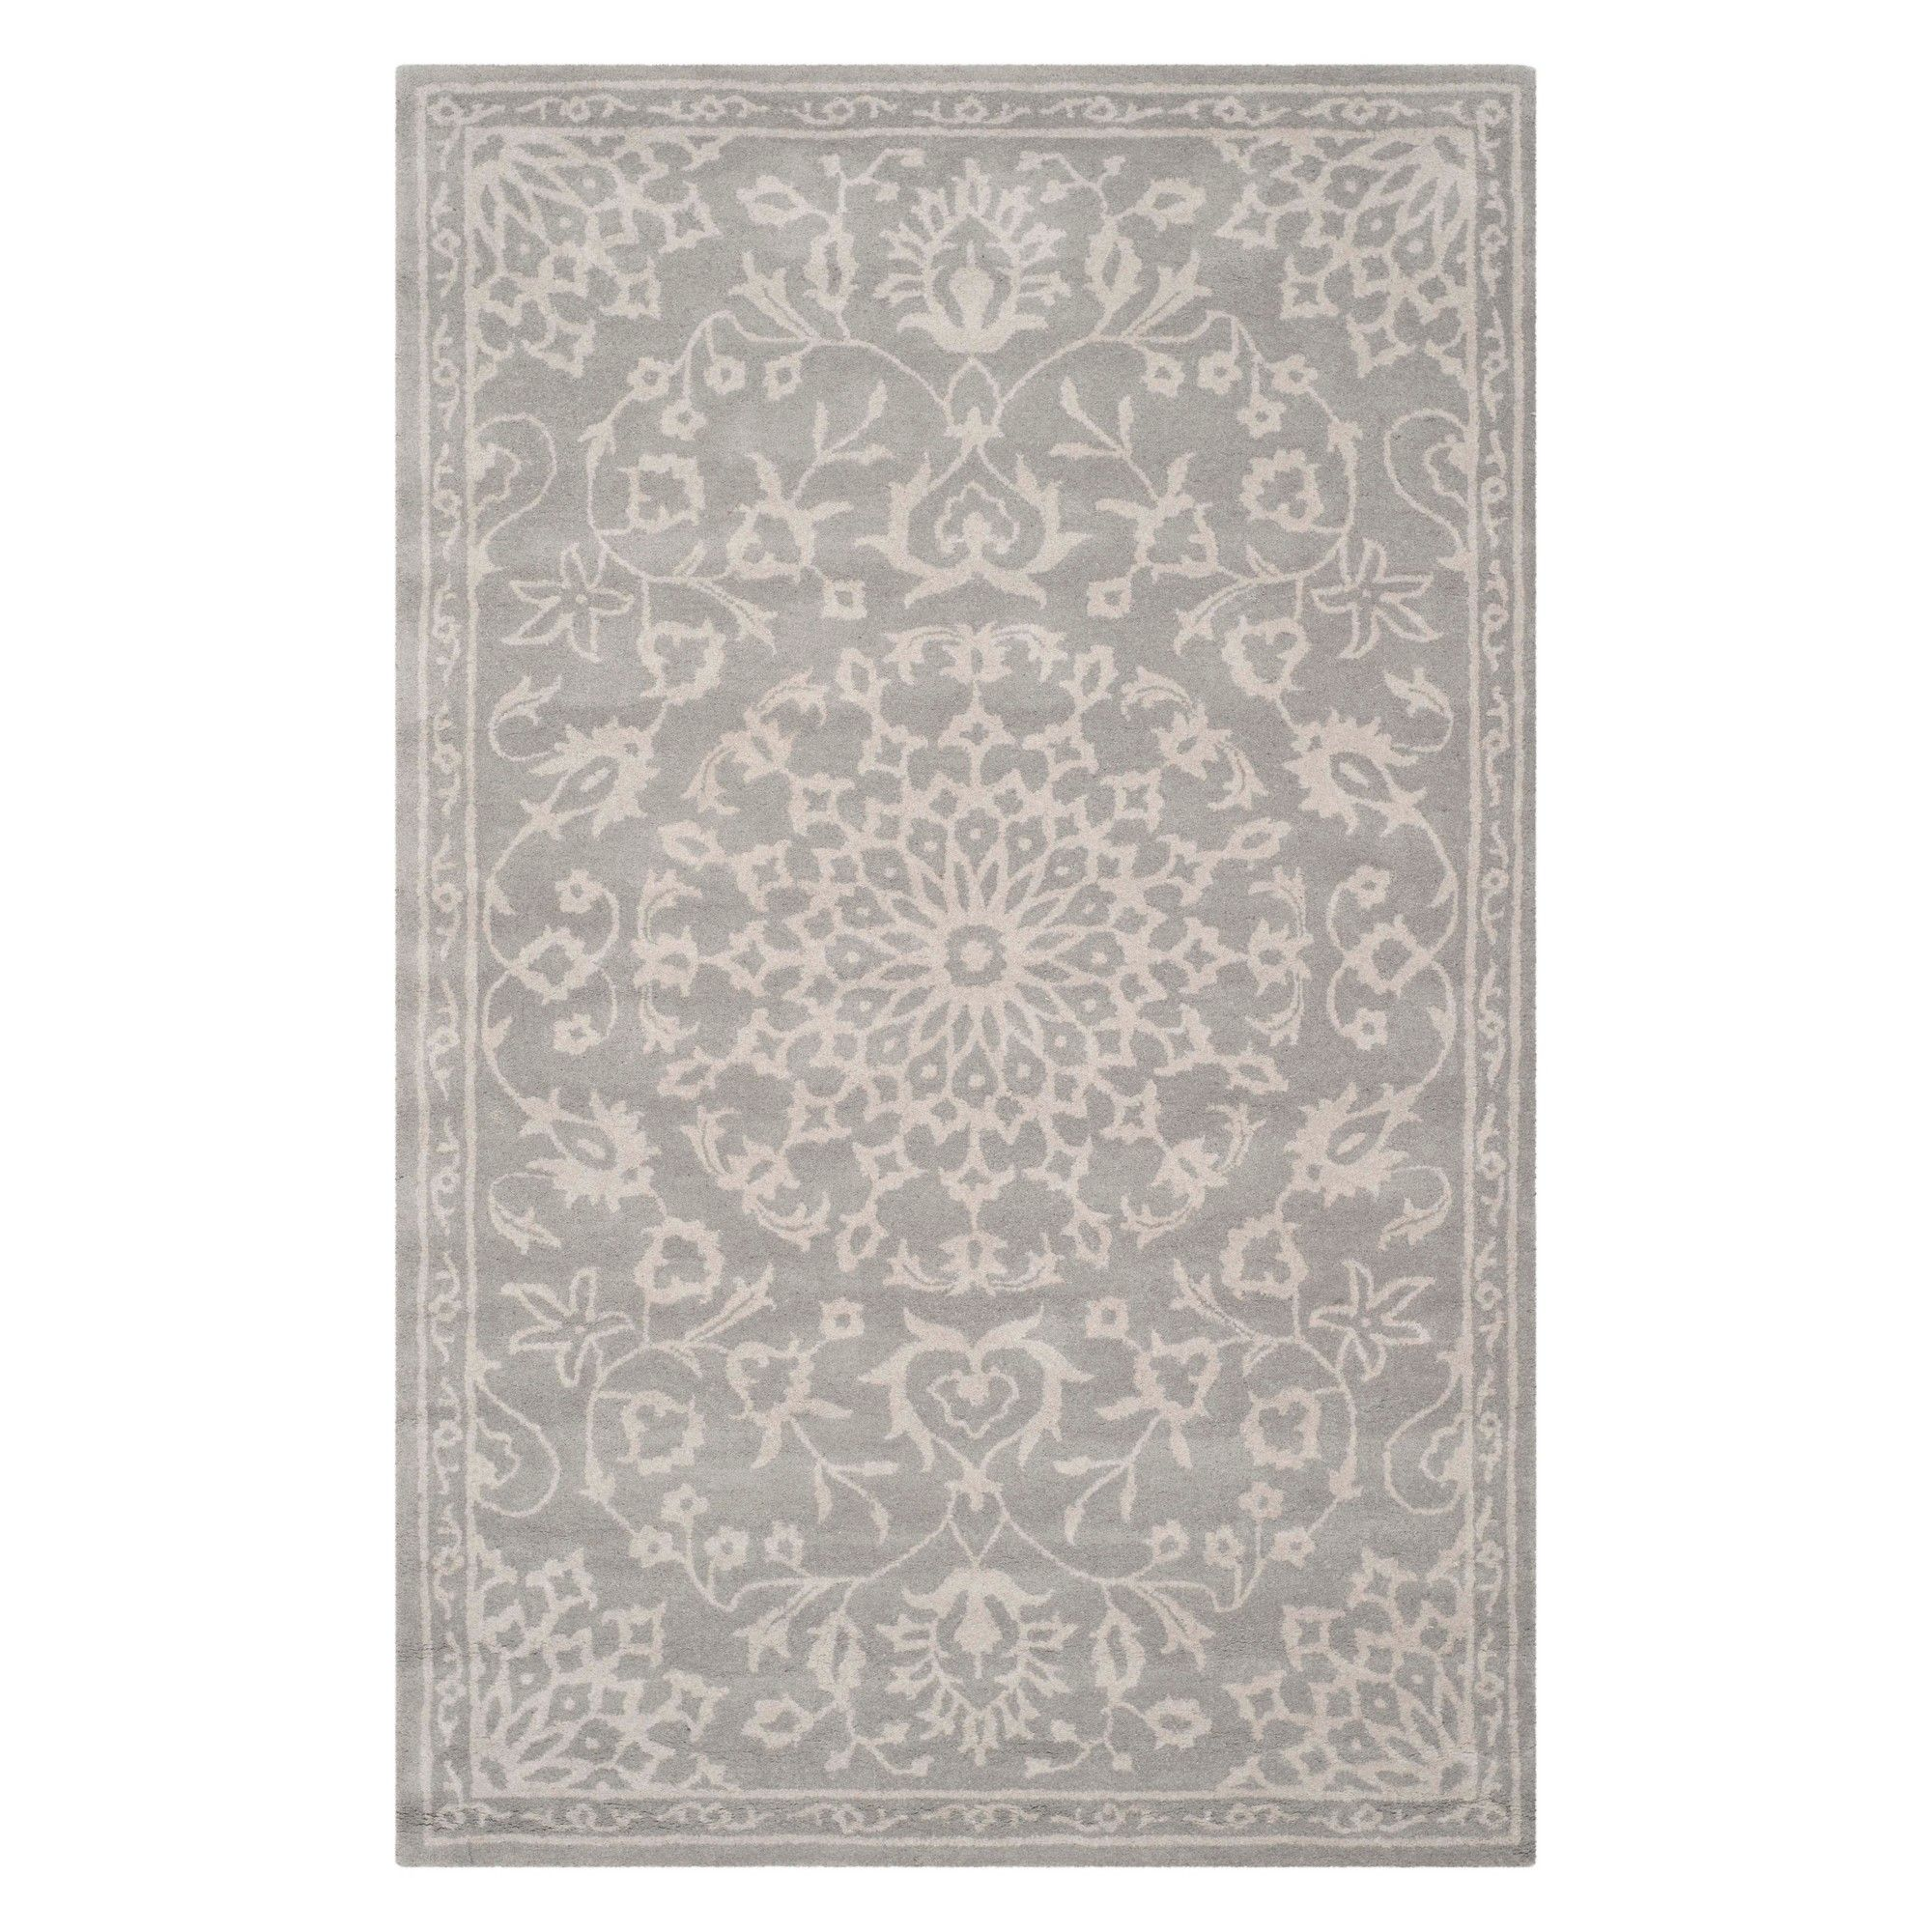 6 X9 Medallion Area Rug Gray Silver Safavieh Gray Silver In 2019 Products Rugs Area Rugs Contemporary Style